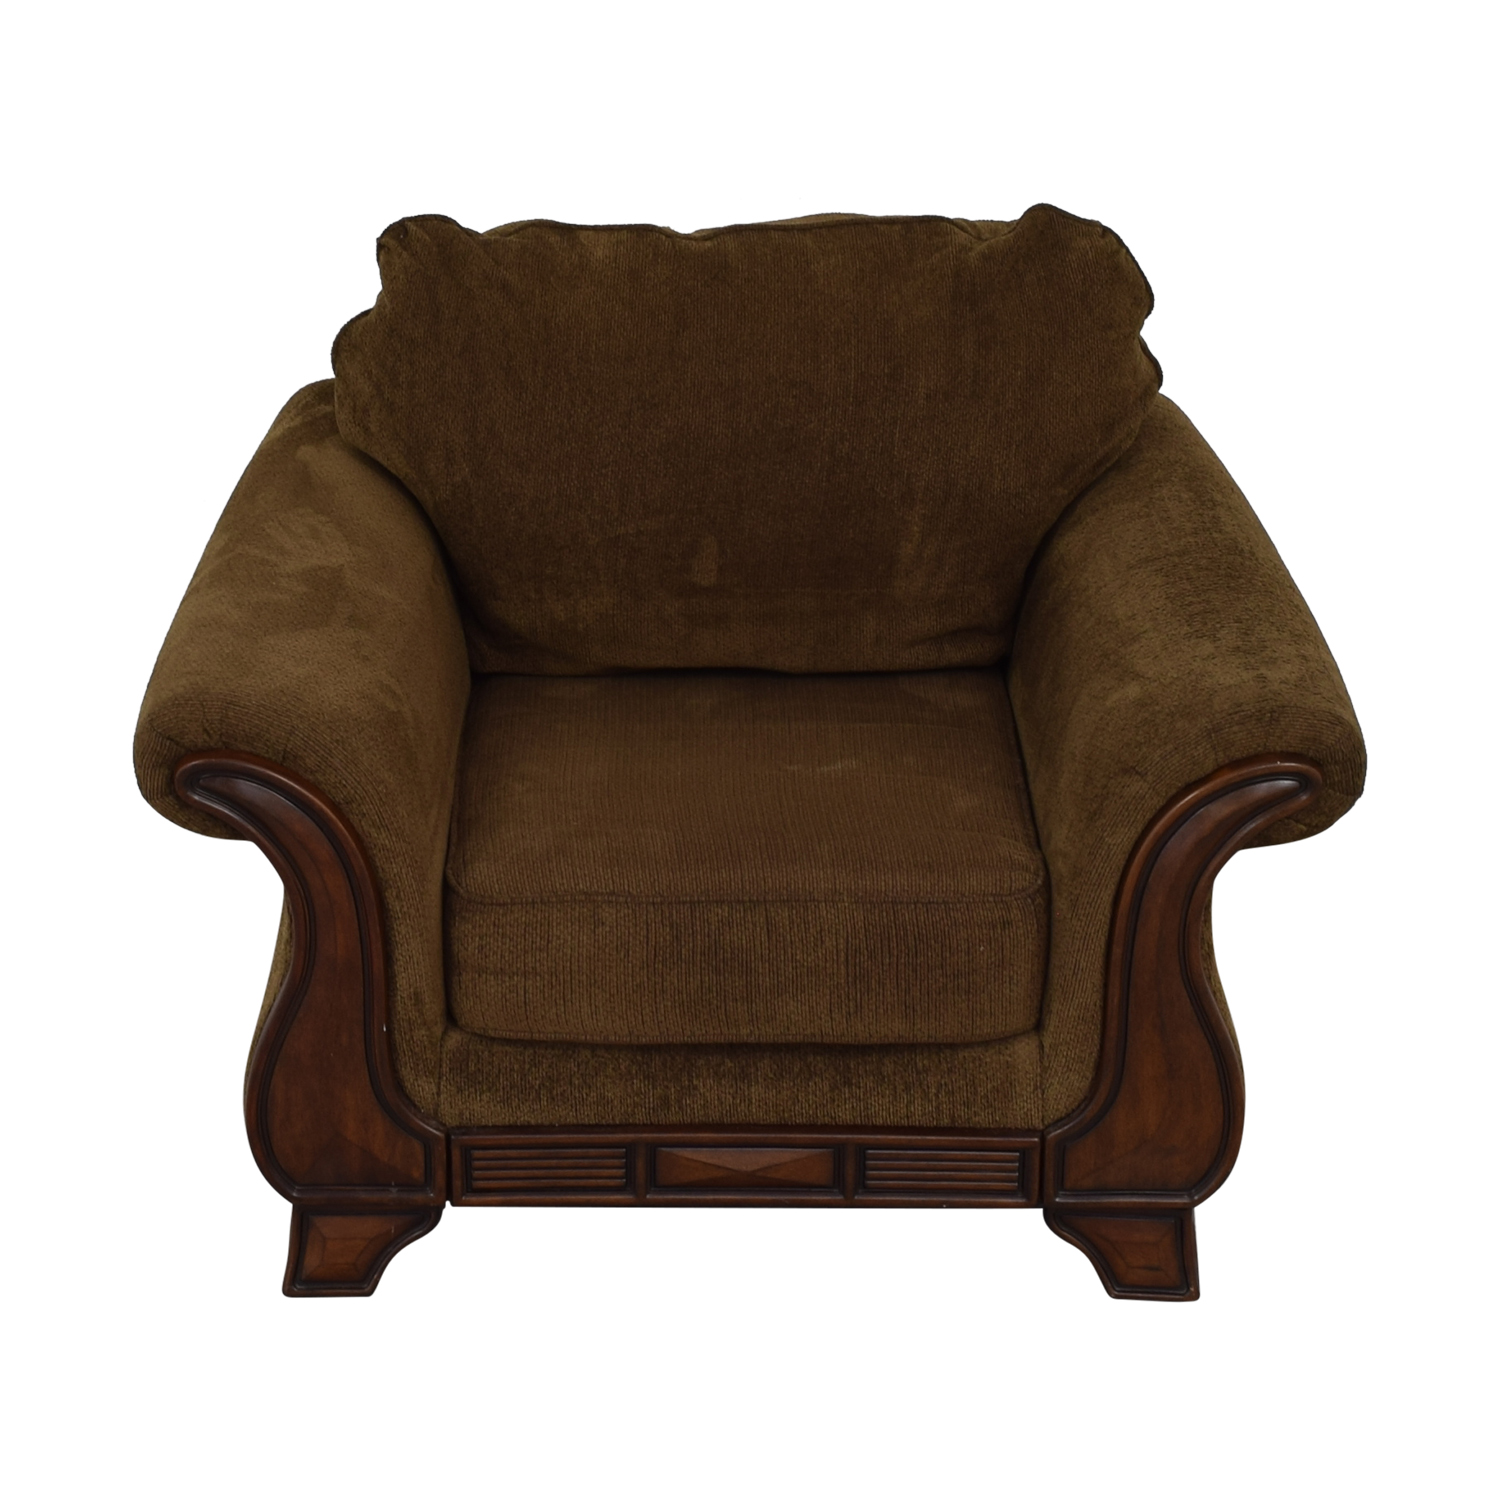 buy Jennifer Convertible Montgomery Brown Accent Chair Jennifer Convertible